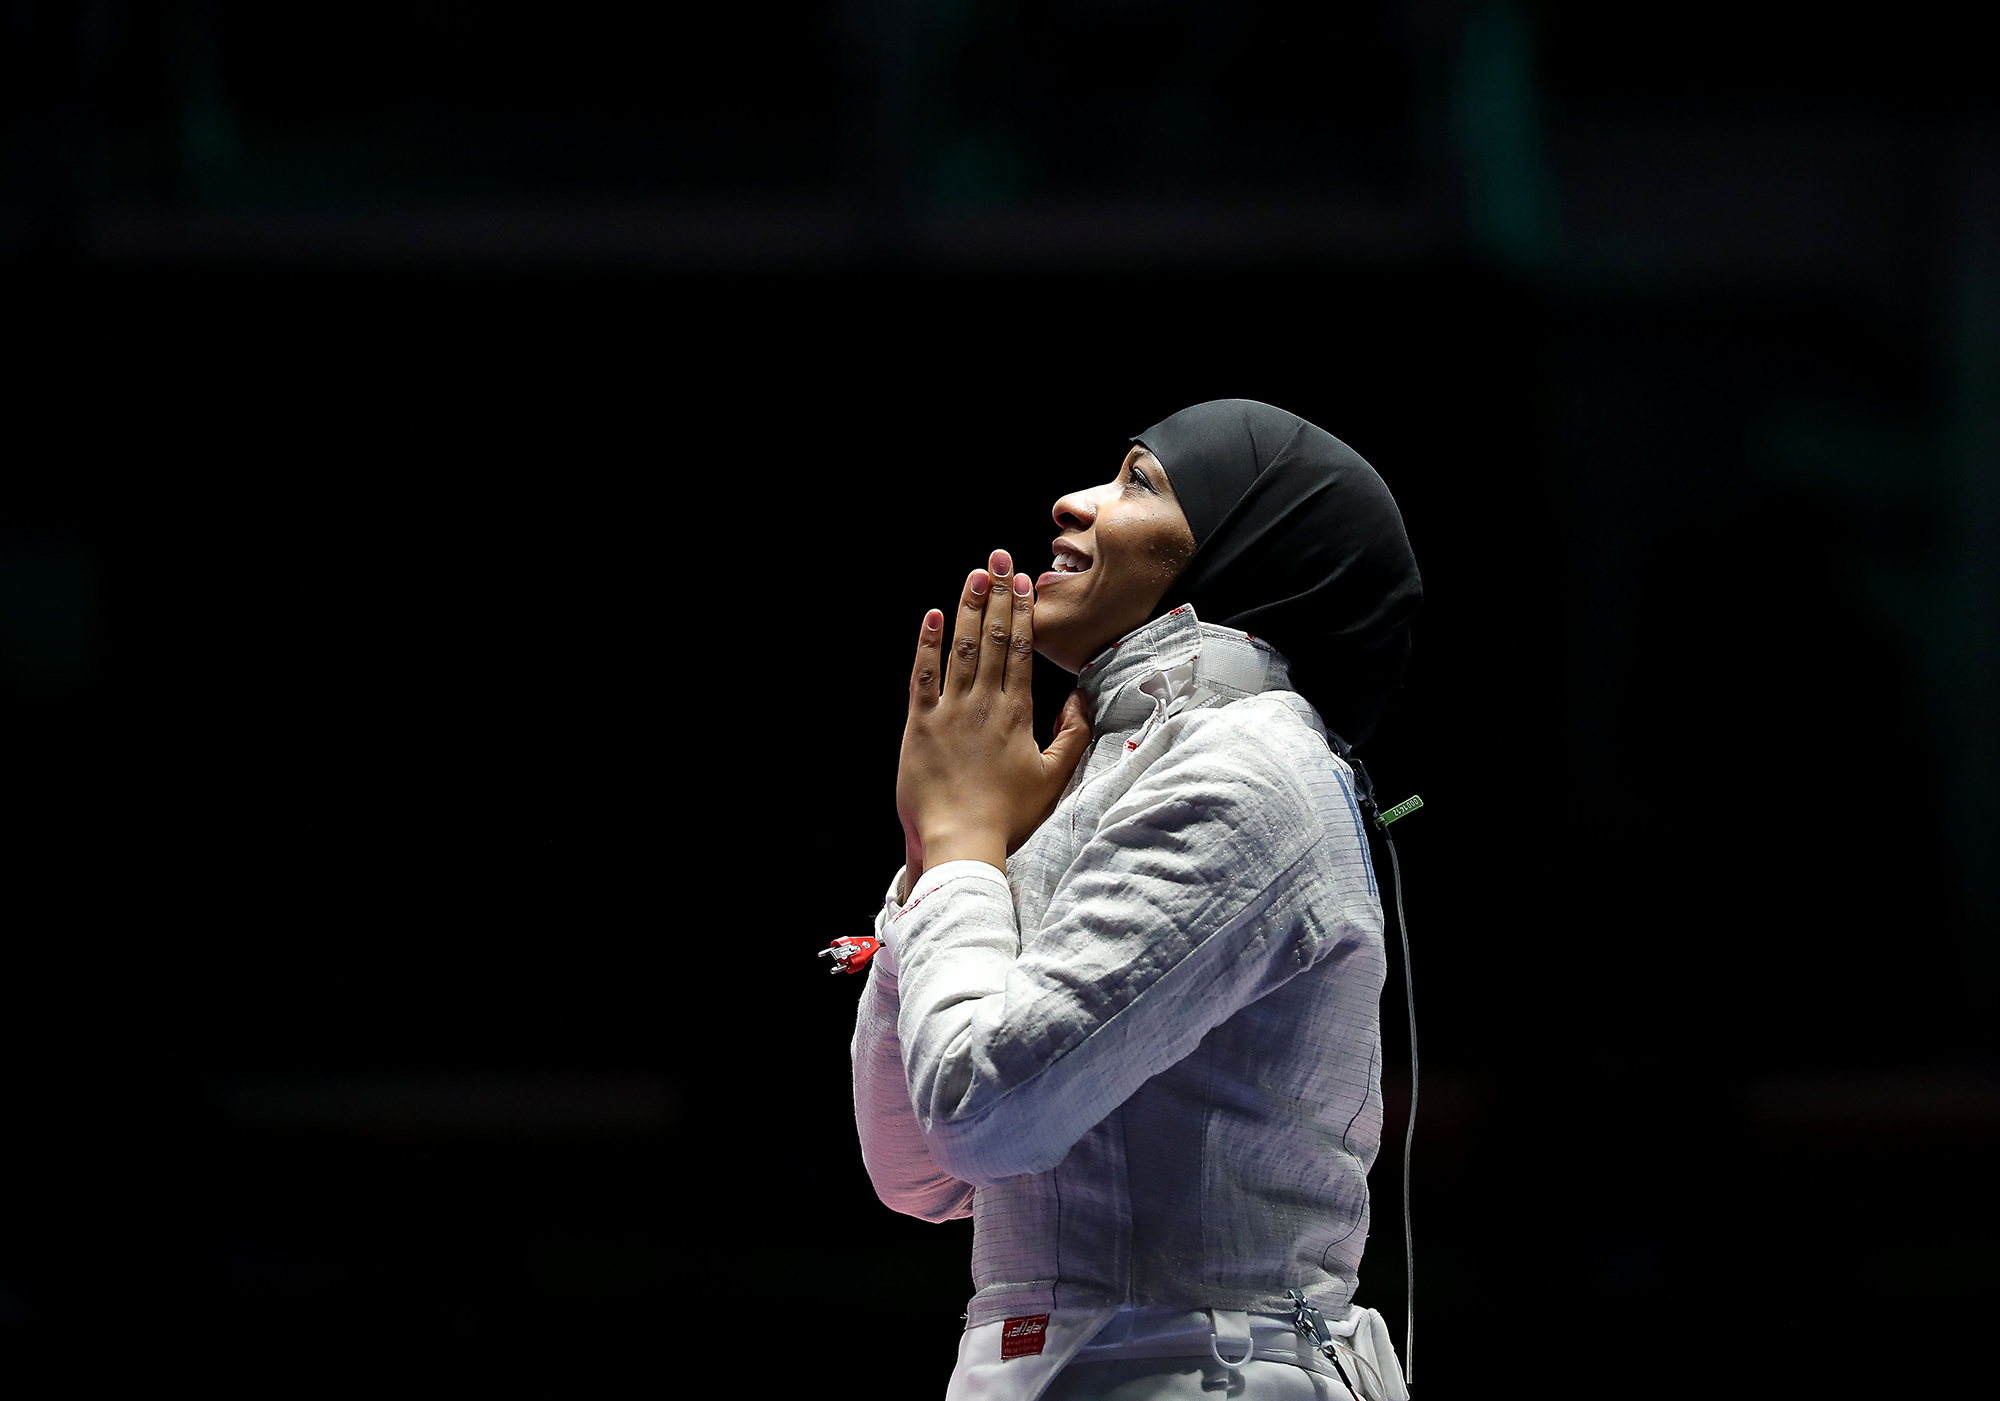 Fencer at Rio Olympic Games